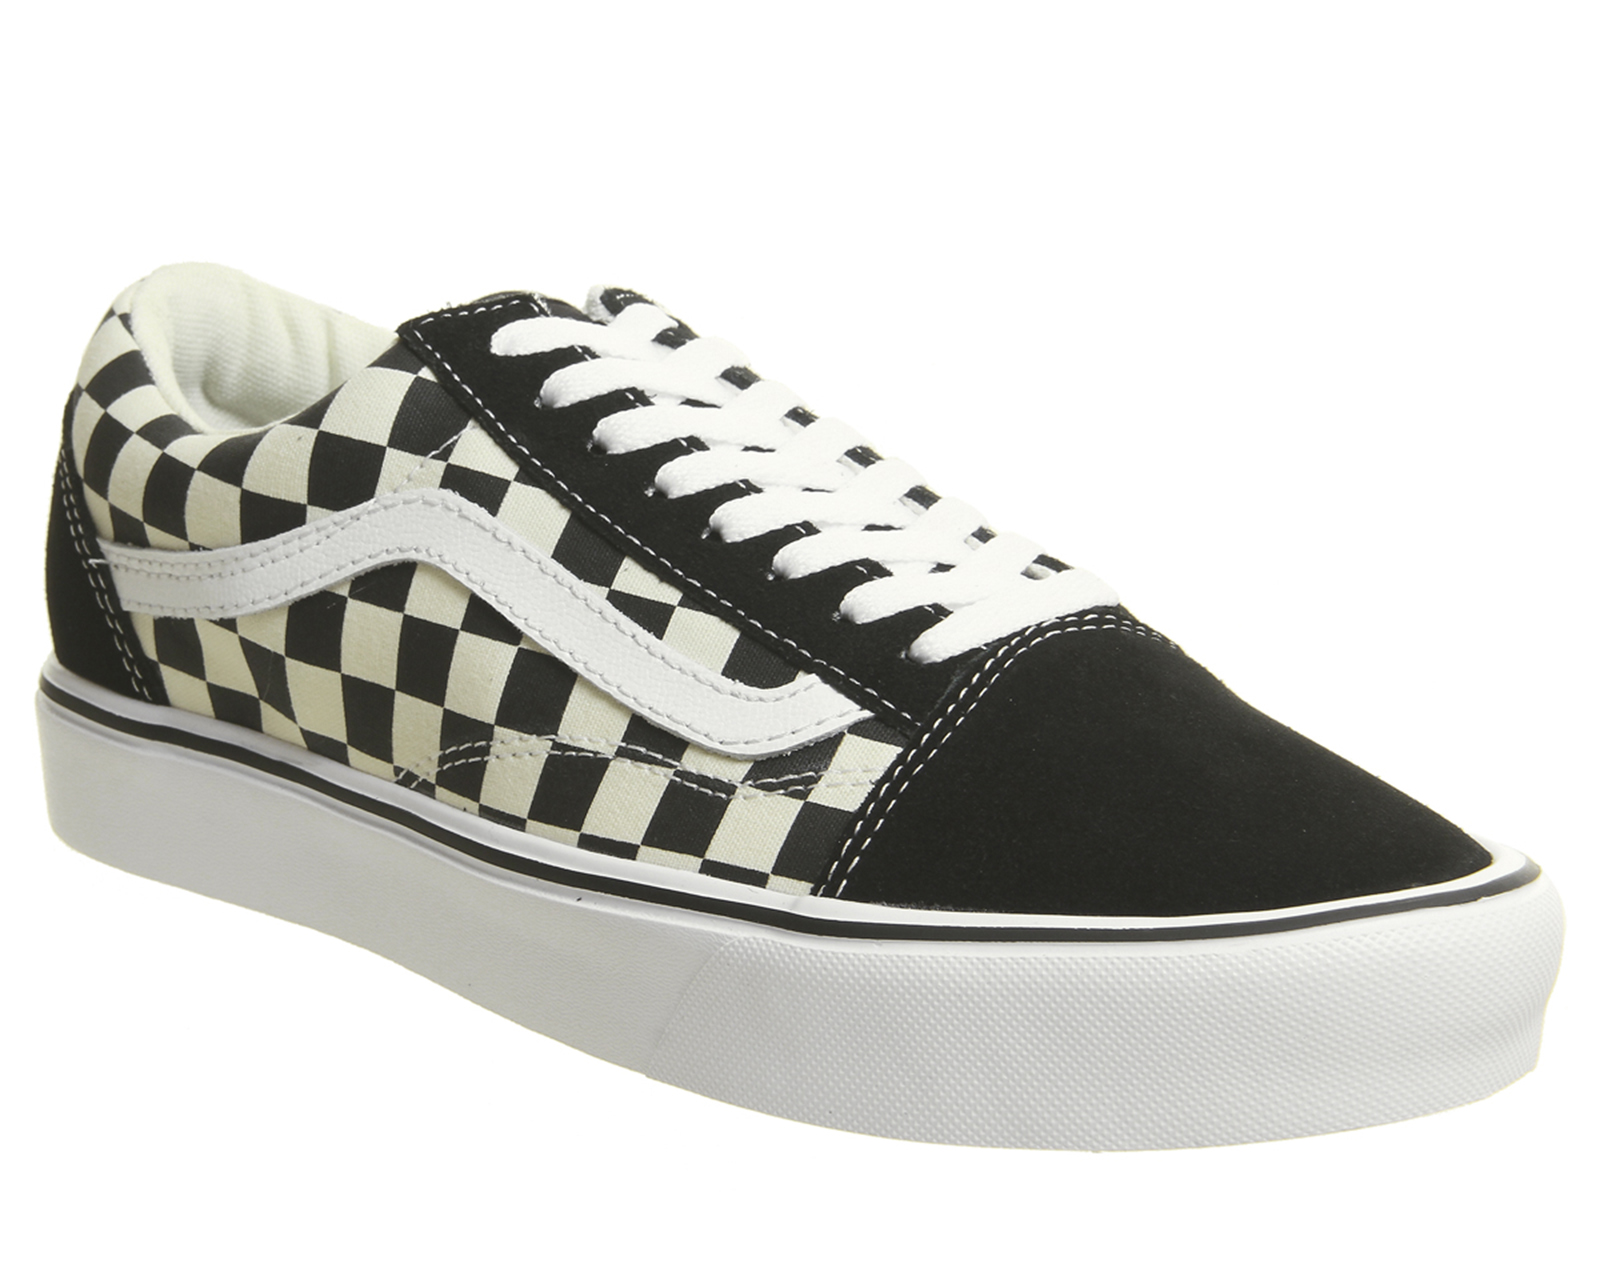 345e6ed8a5f Sentinel Mens Vans Old Skool Lite Black White Checkerboard Trainers Shoes